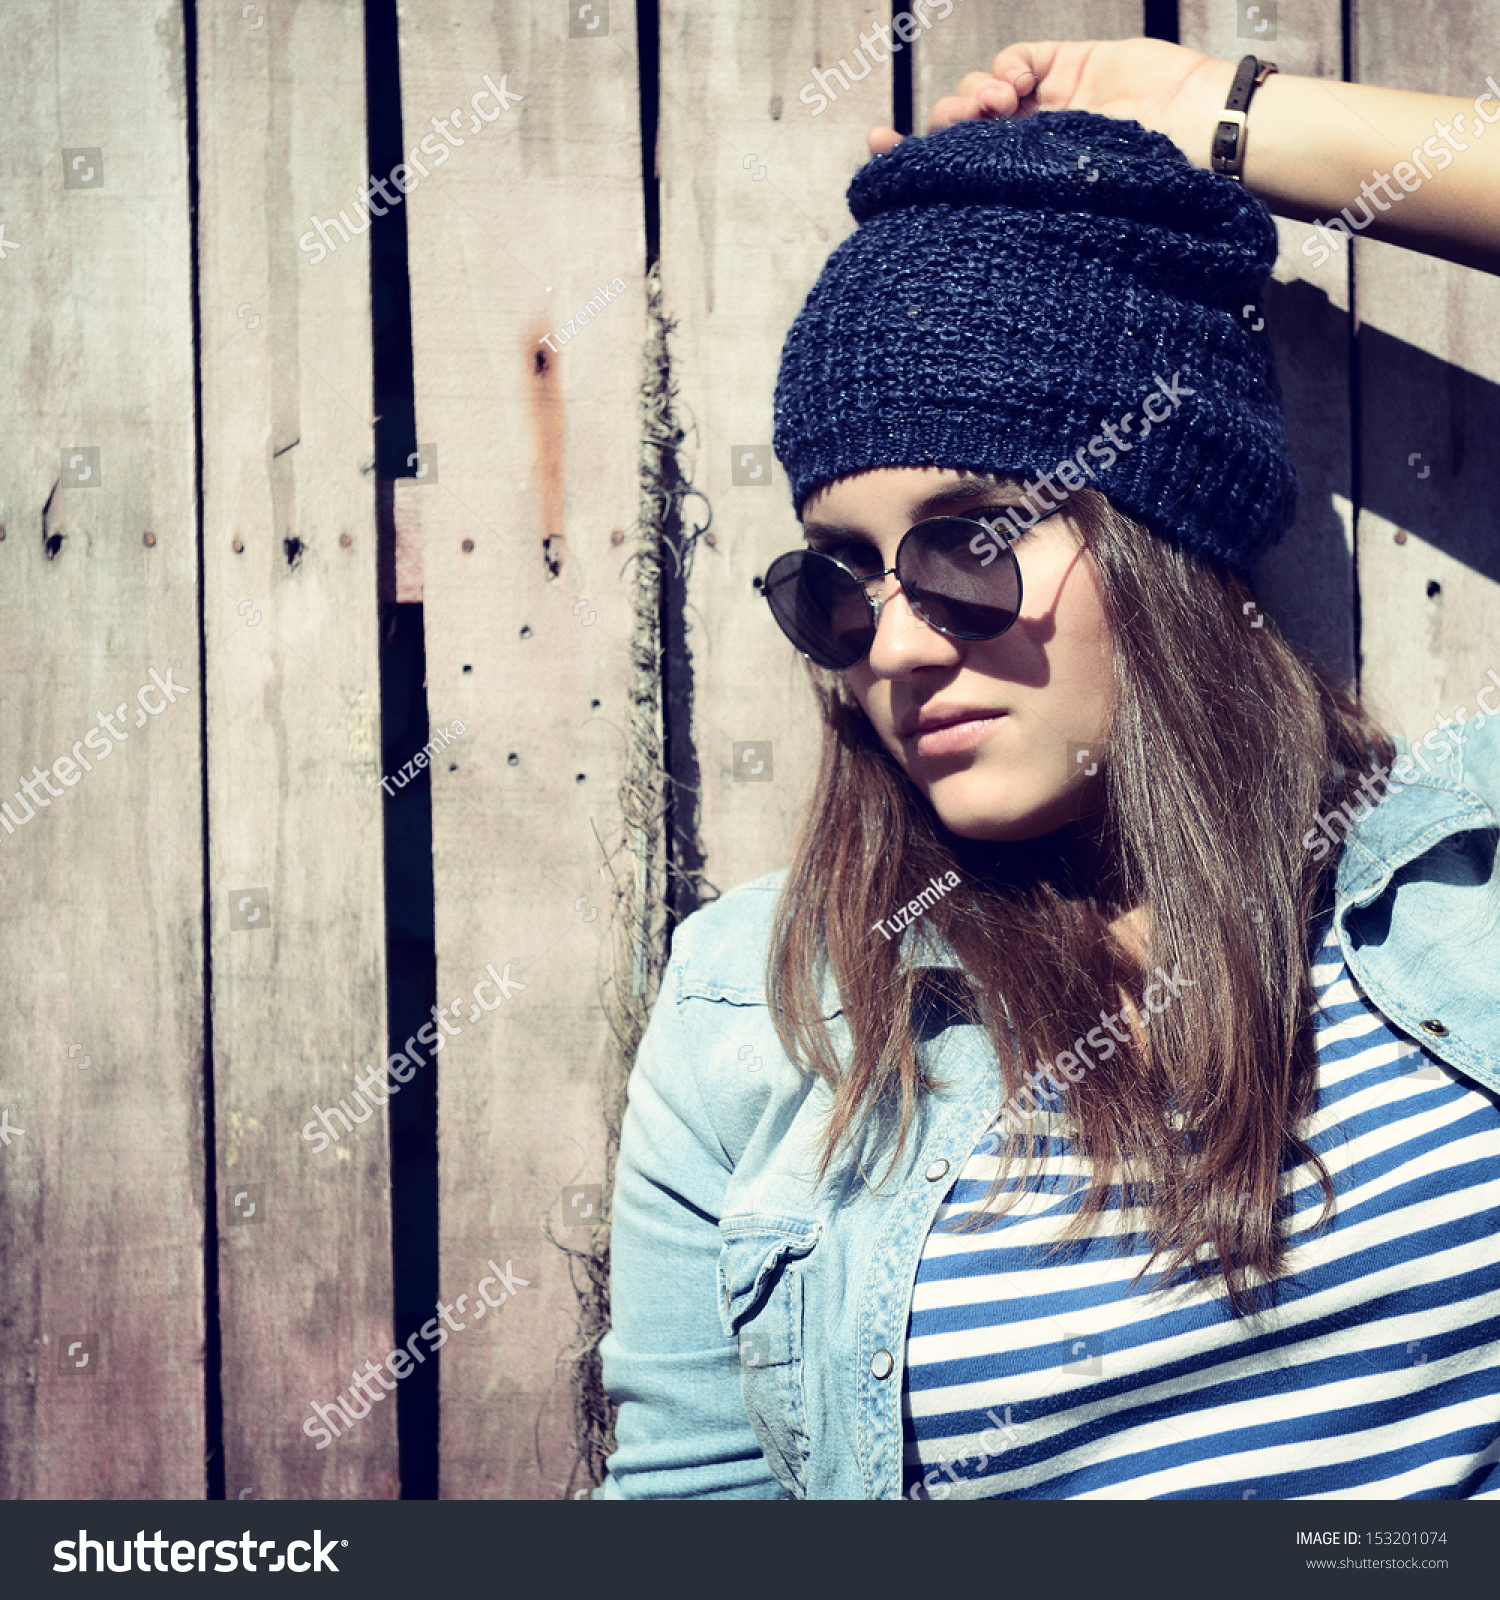 Beautiful Cool Girl In Hat And Sunglasses Against Grunge